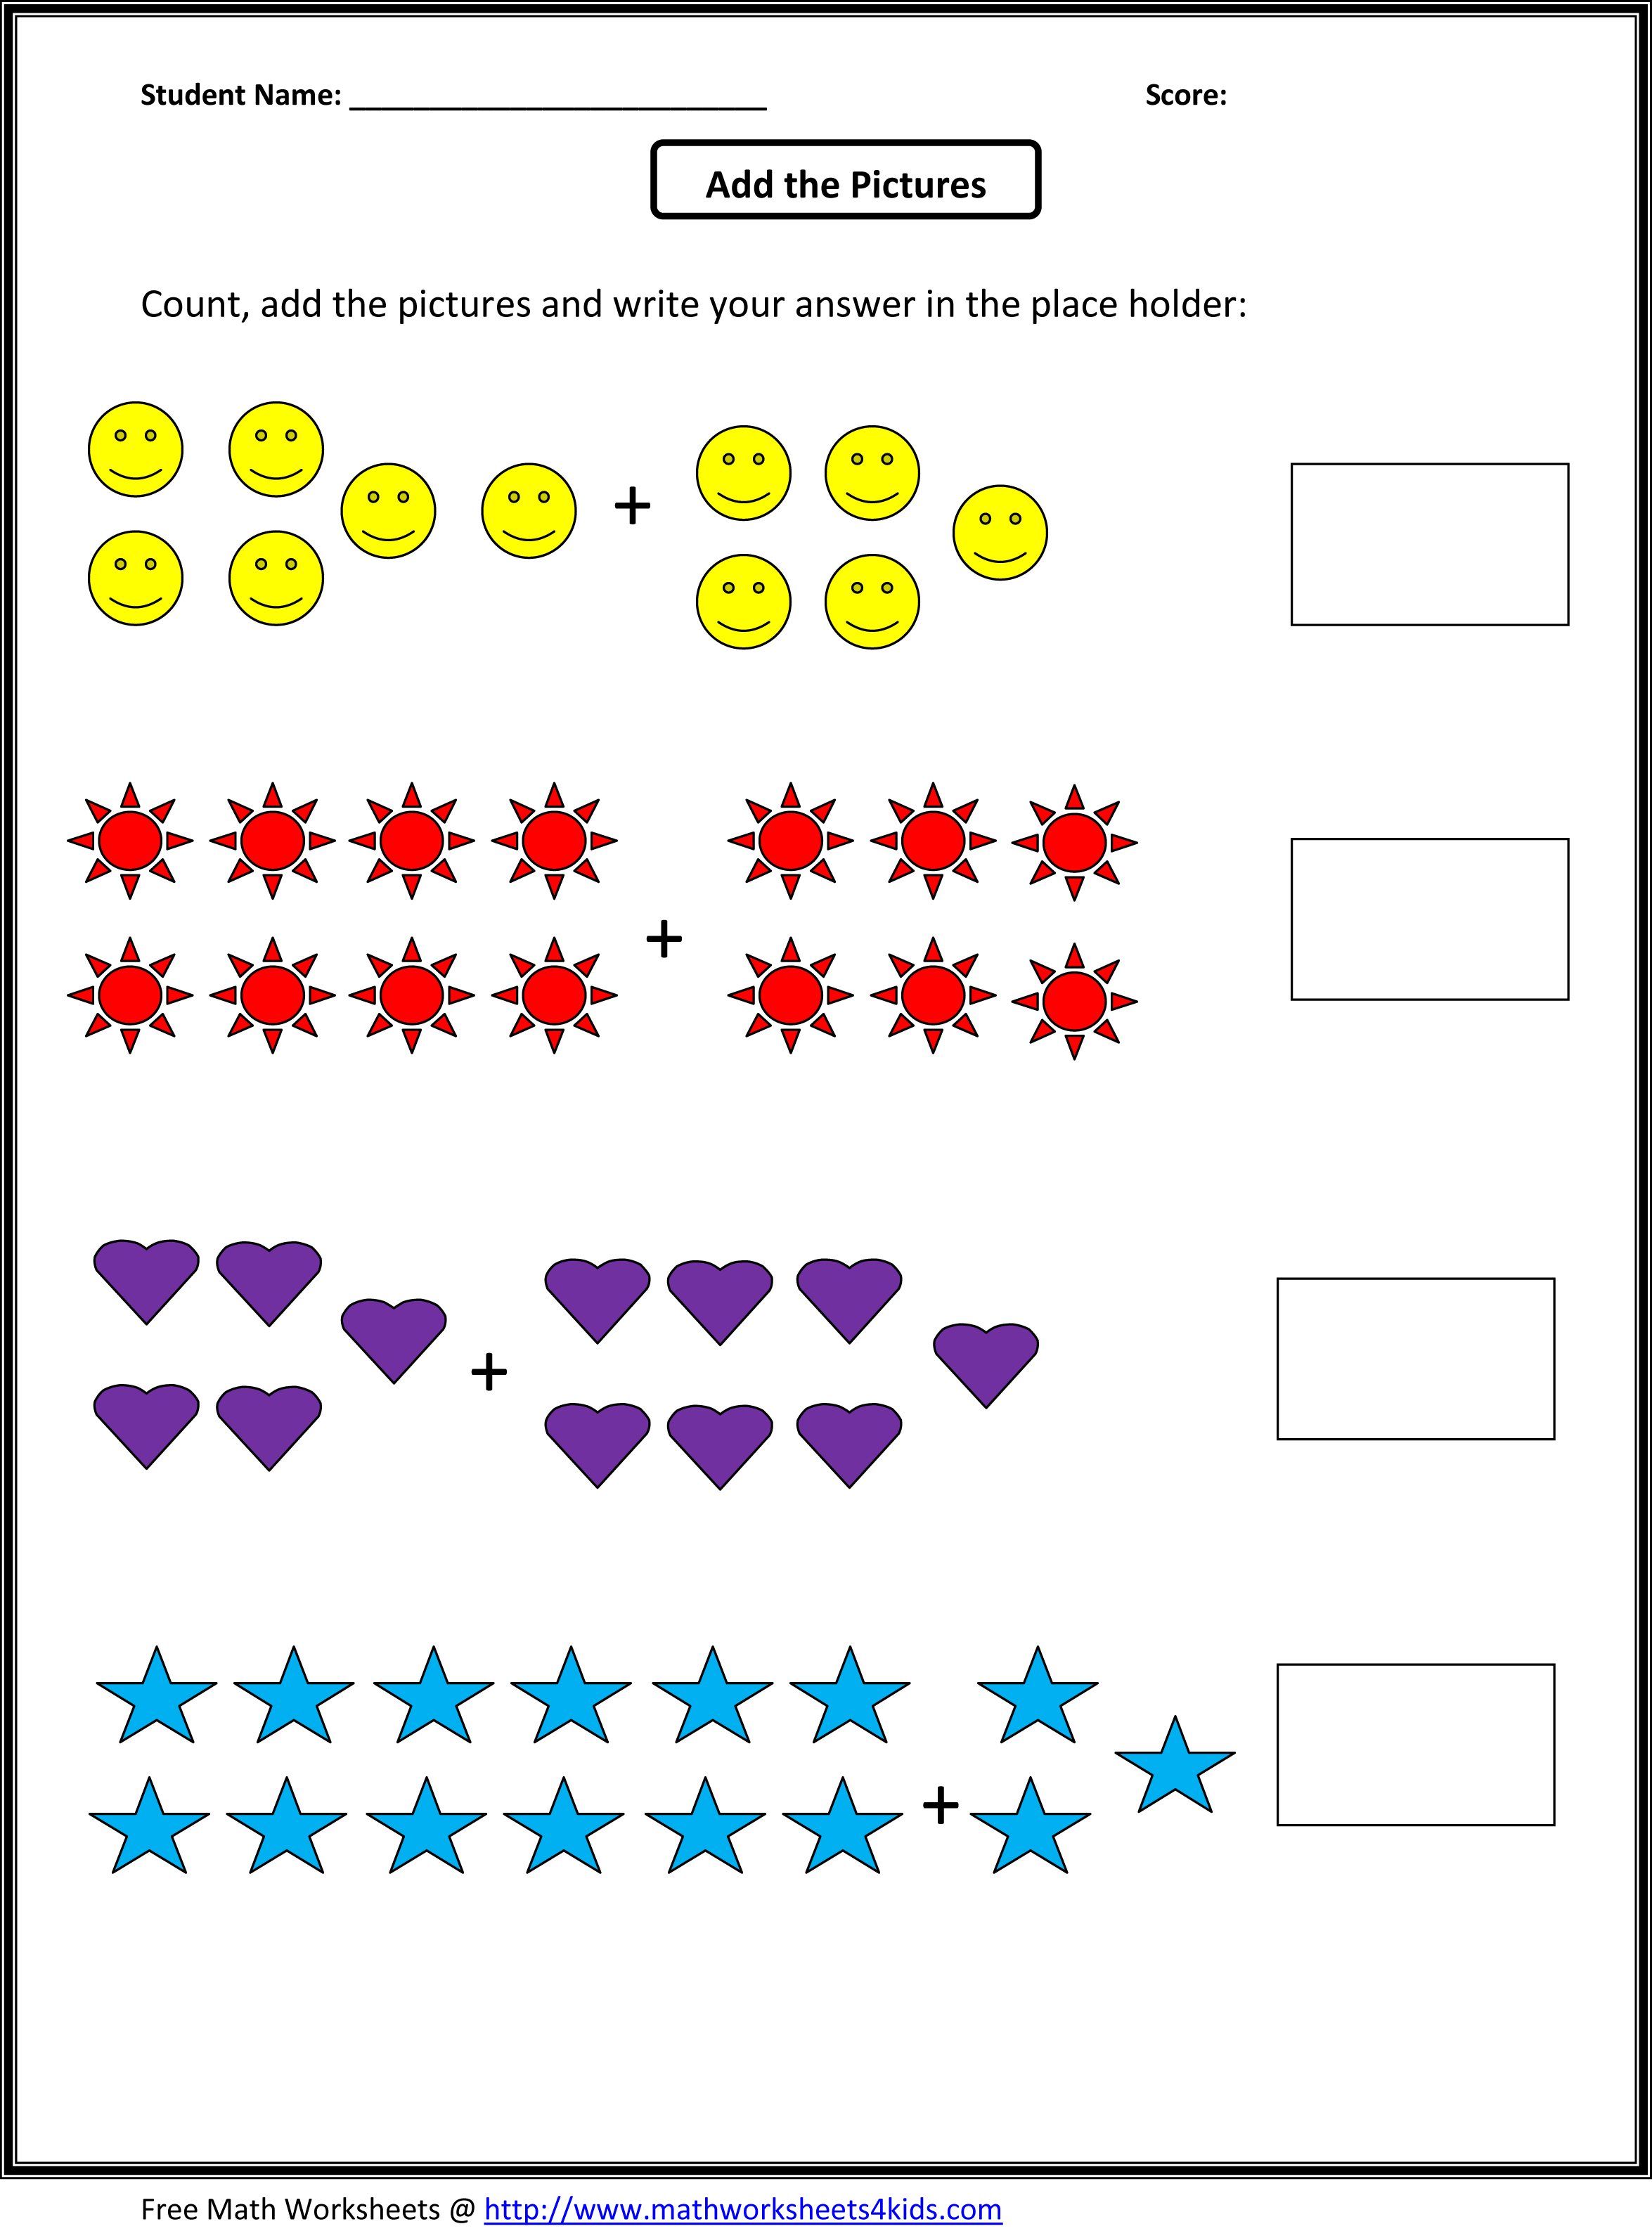 Proatmealus  Picturesque Grade  Maths Worksheet  Reocurent With Licious Math Worksheets For St Grade Free  Reocurent With Charming Number Writing Practice Worksheets For Kindergarten Also Colour Wheel Worksheets In Addition Canadian History Worksheets And Millions Place Value Worksheets As Well As Maths Subtraction Worksheet Additionally Long Multiplication Worksheets Year  From Reocurentcom With Proatmealus  Licious Grade  Maths Worksheet  Reocurent With Charming Math Worksheets For St Grade Free  Reocurent And Picturesque Number Writing Practice Worksheets For Kindergarten Also Colour Wheel Worksheets In Addition Canadian History Worksheets From Reocurentcom